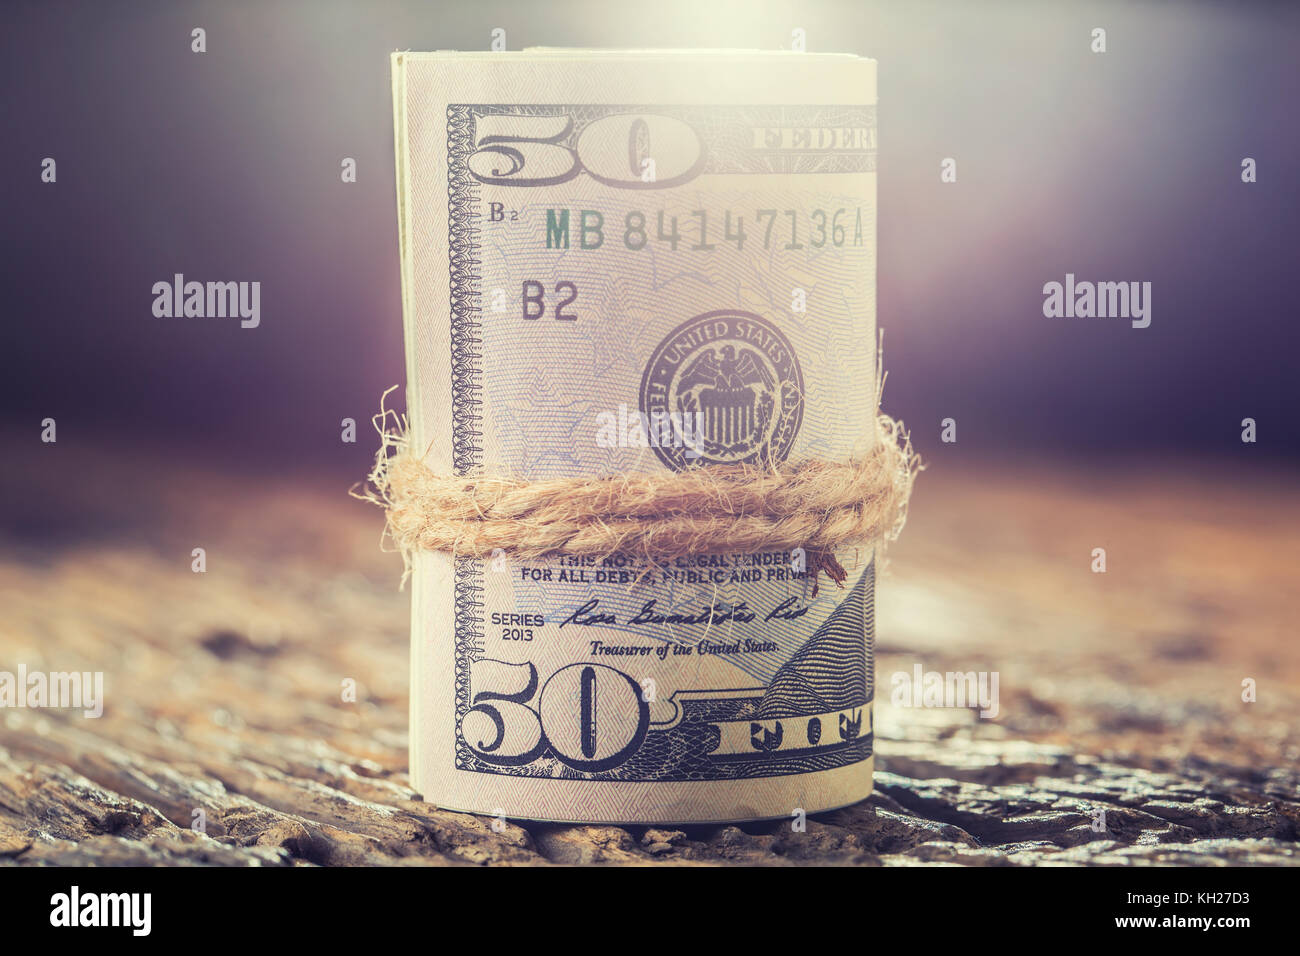 Dollars rolled banknotes closeup. Cash Money American Dollars.Close-up view of stack of US dollars. - Stock Image